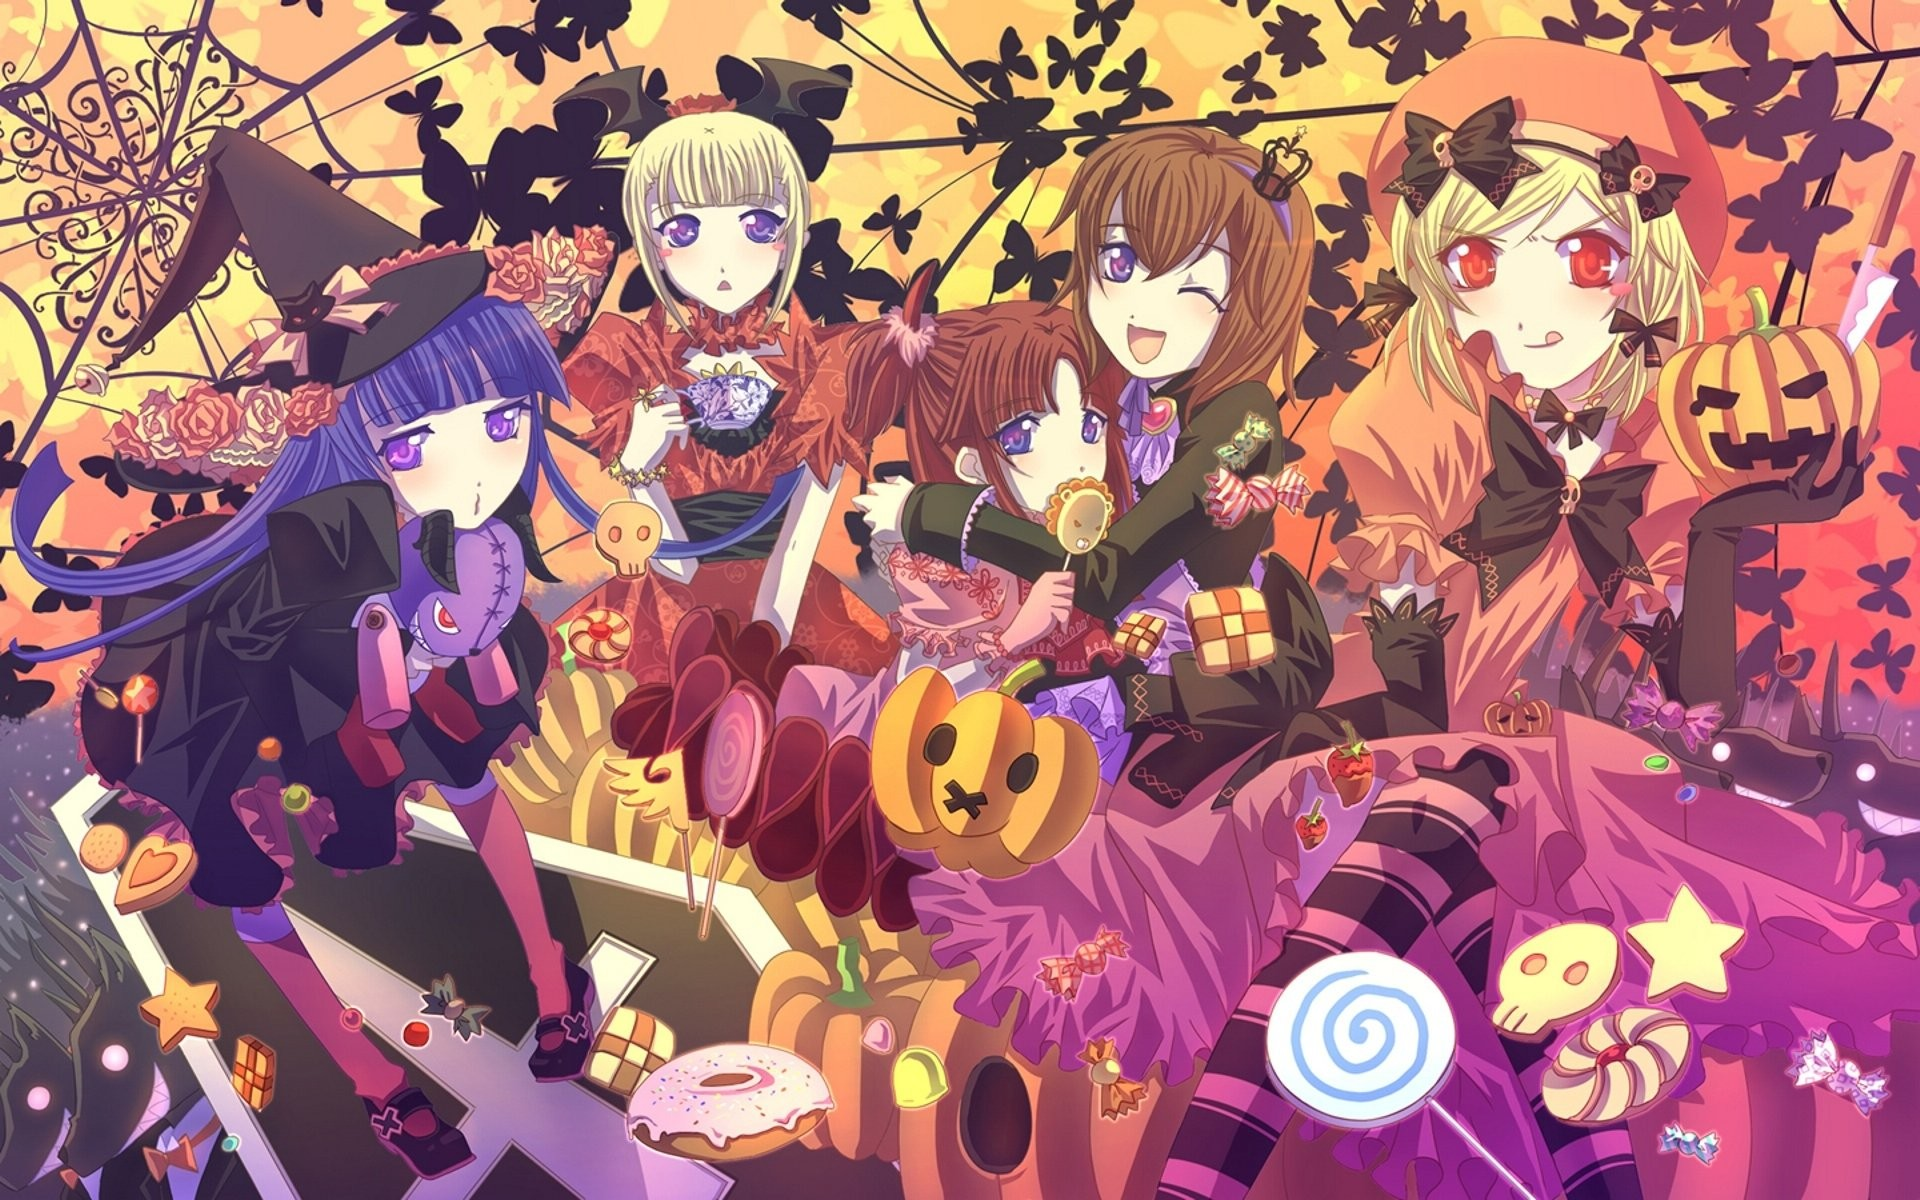 1920x1080p Wallpaper Girl Anime Halloween Wallpaper 54 Images